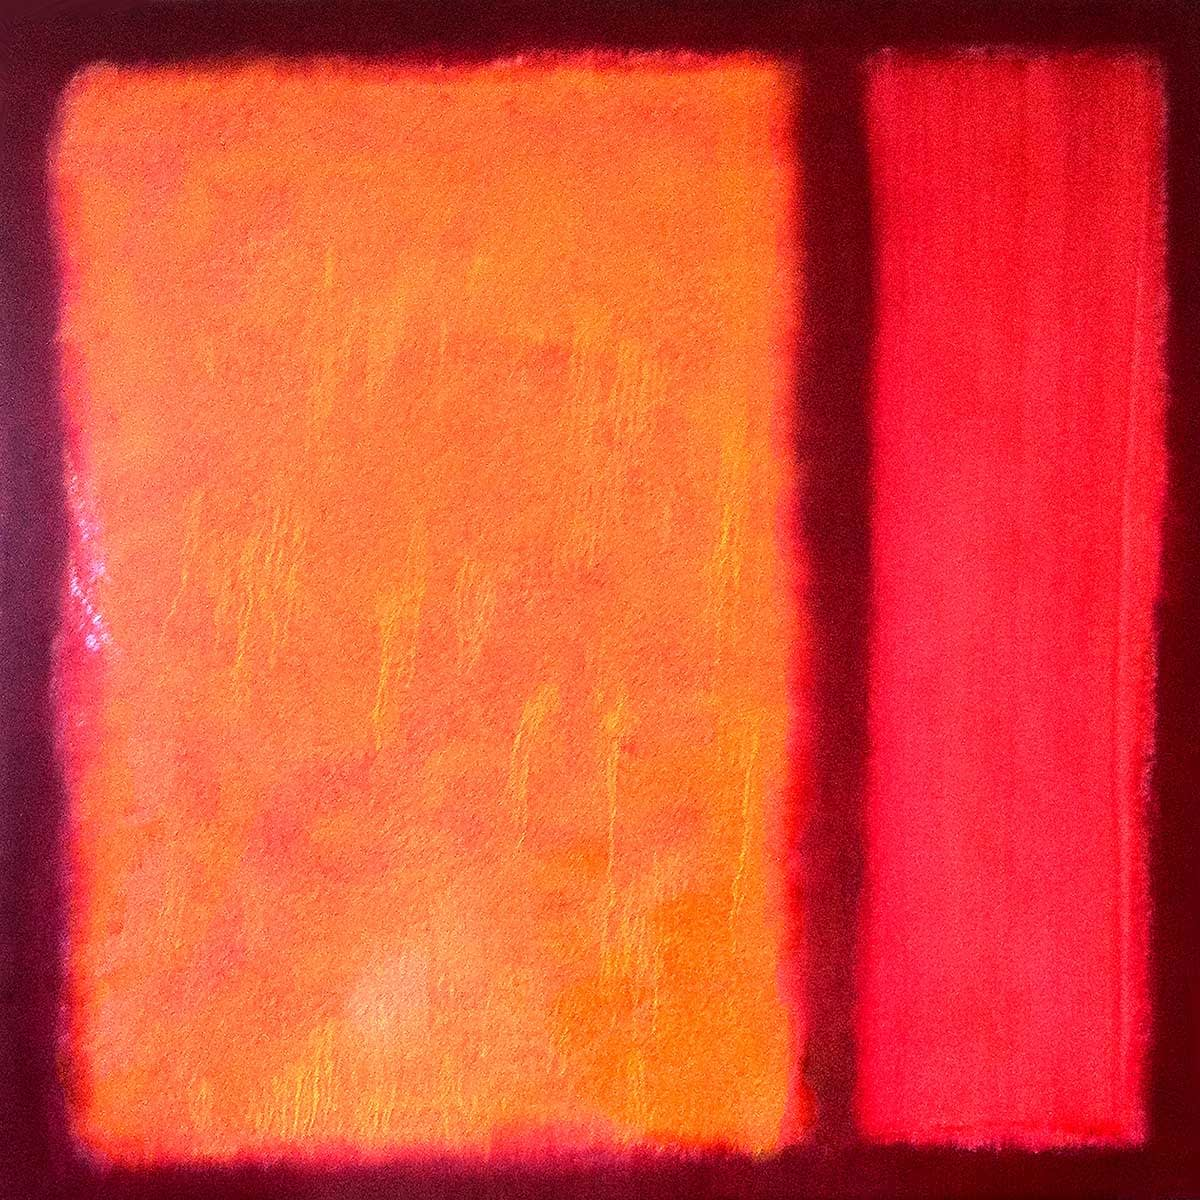 color-field-painting-orange-rot